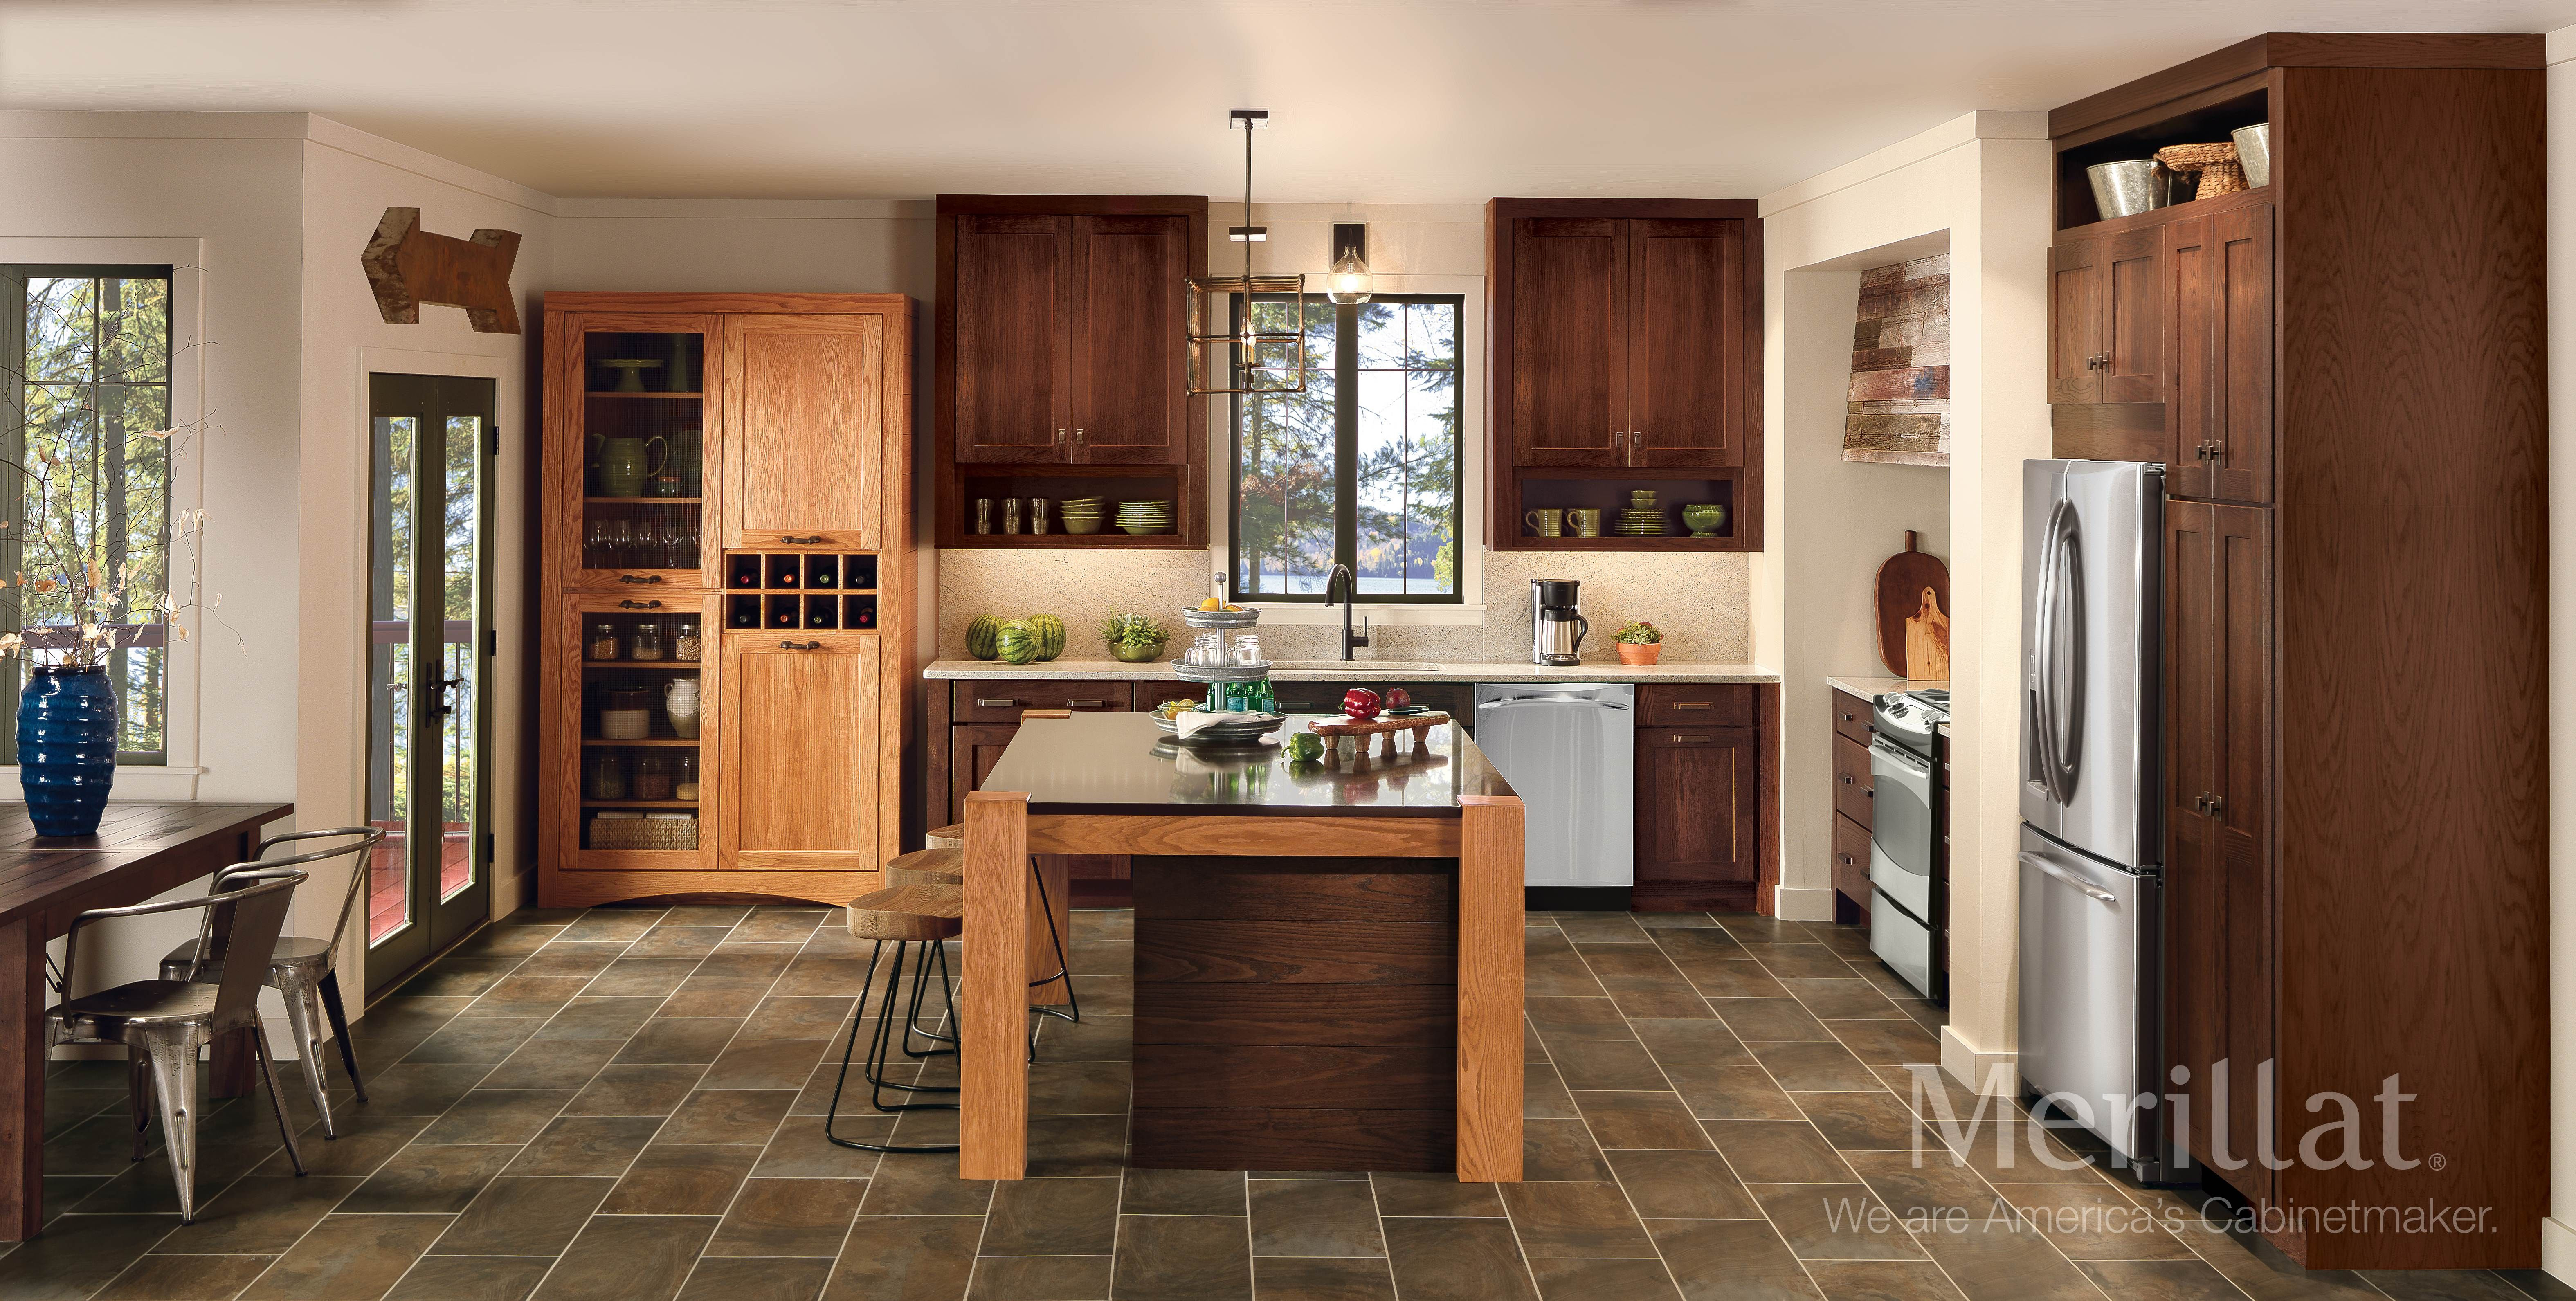 Merillat Classic Tolani Oak Pecan And Hazelnut Merillat Cabinetry Contrasting Finishes Give This Kitchen Design Trends Kitchen Design Kitchen Color Trends